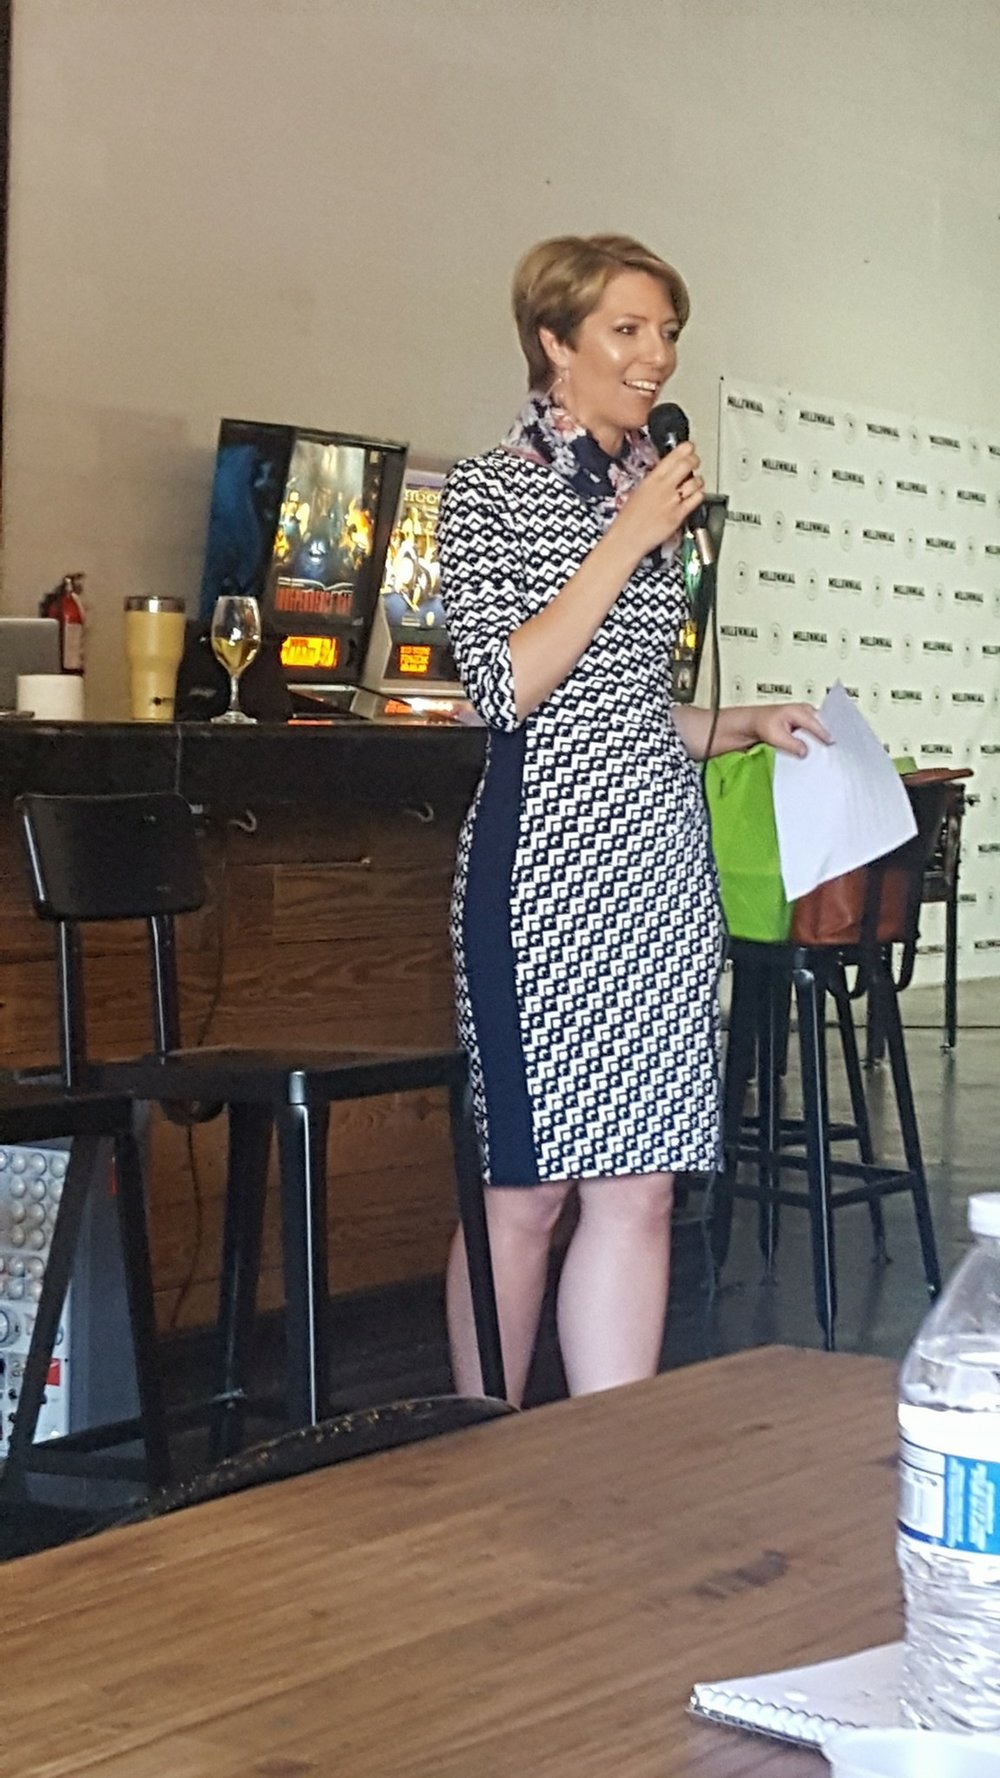 Erica Castner at the Expand Your Presence event at Millennial Brewing in Fort Myers, FL on March 22, 2018.